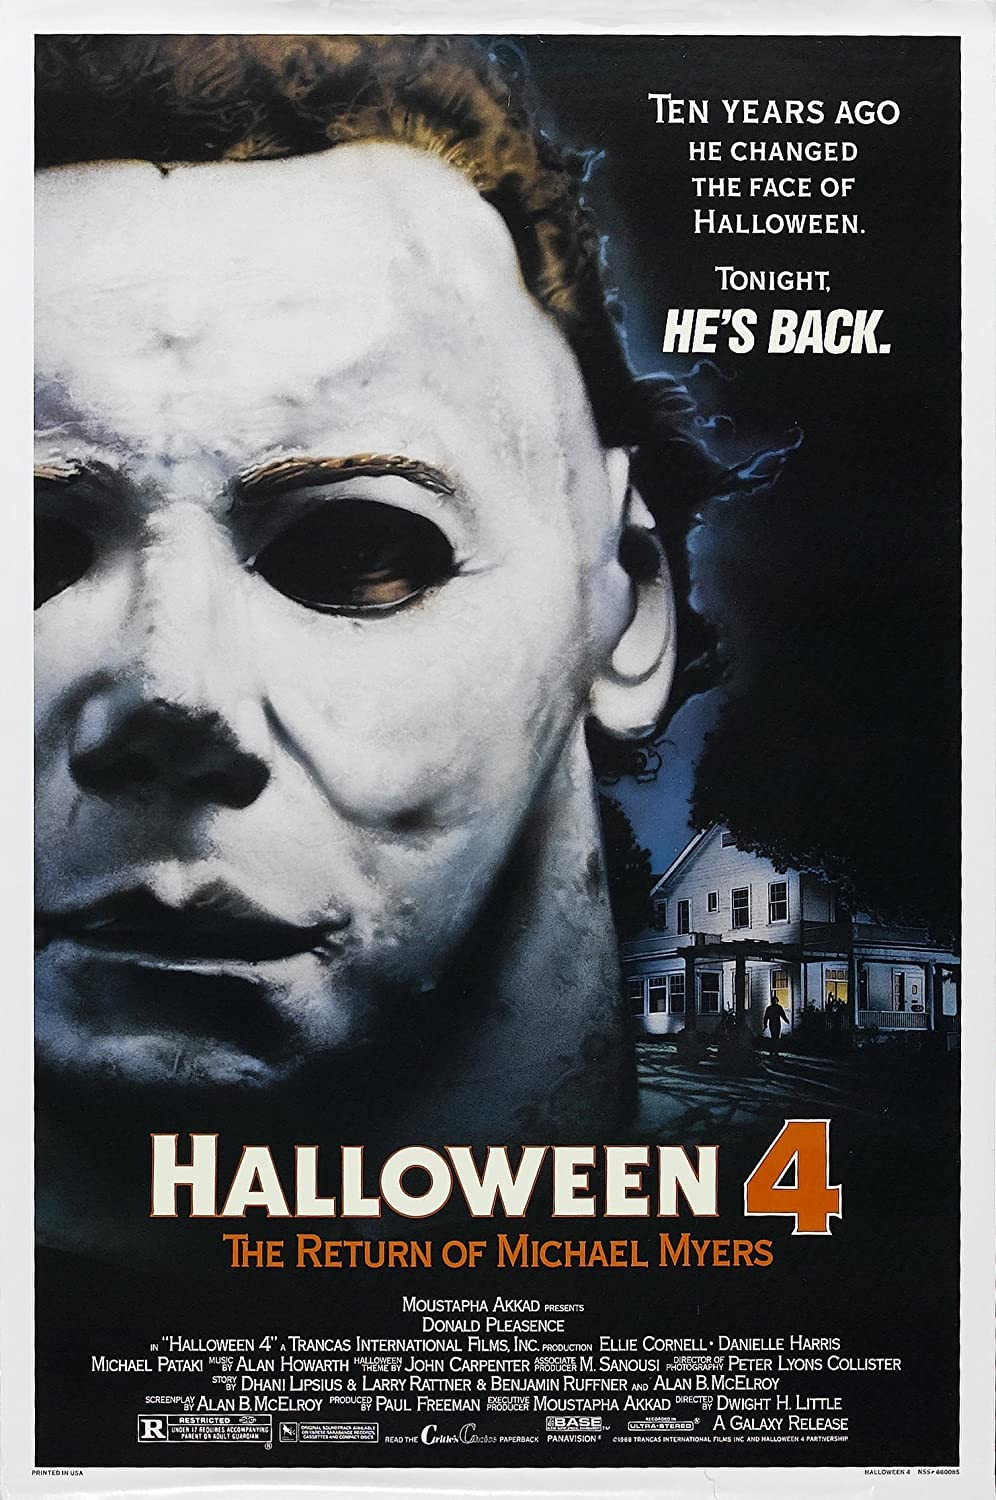 Halloween 1978 Movie Poster.Halloween 4 The Return Of Michael Myers 1978 Movie Poster 24x36